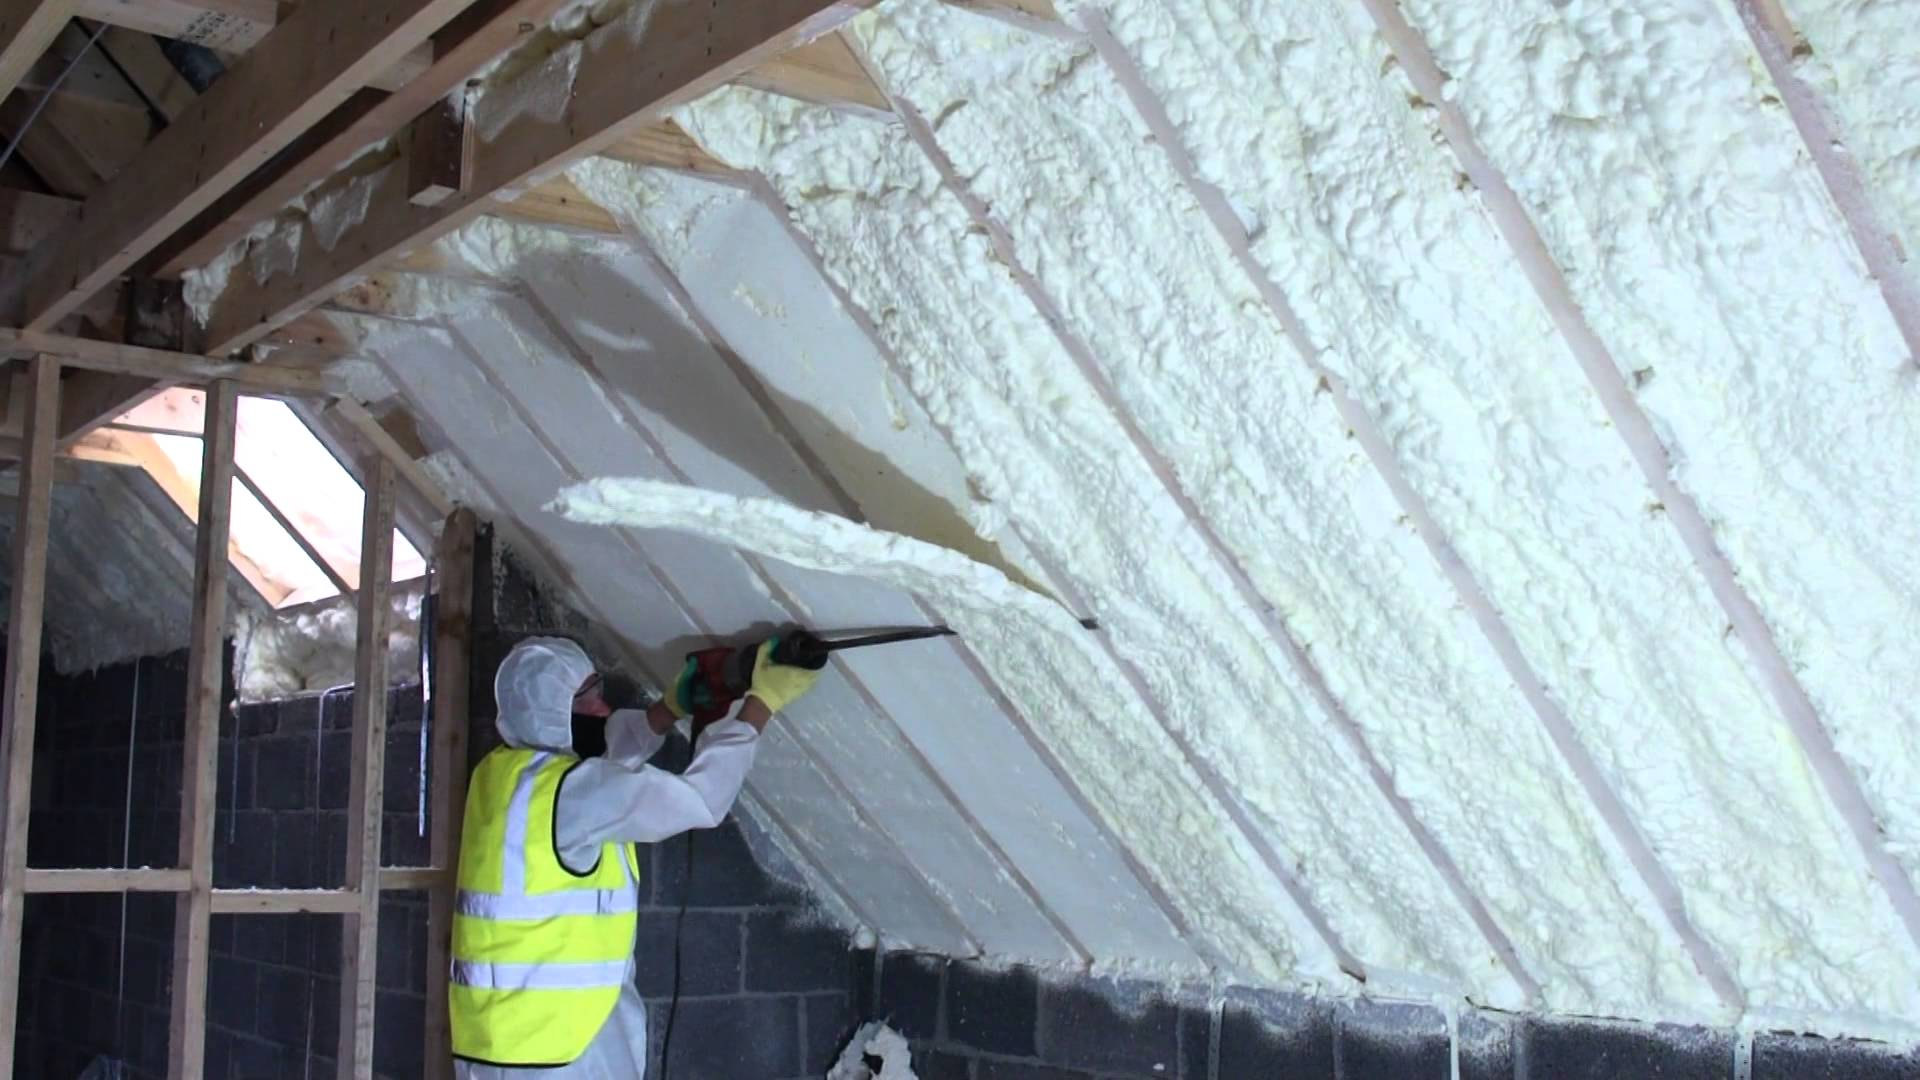 This old house spray foam insulation attic attic ideas spray foam of attic using fusion sprayfoam insulation being cut throughout proportions 1920 x 1080 solutioingenieria Gallery